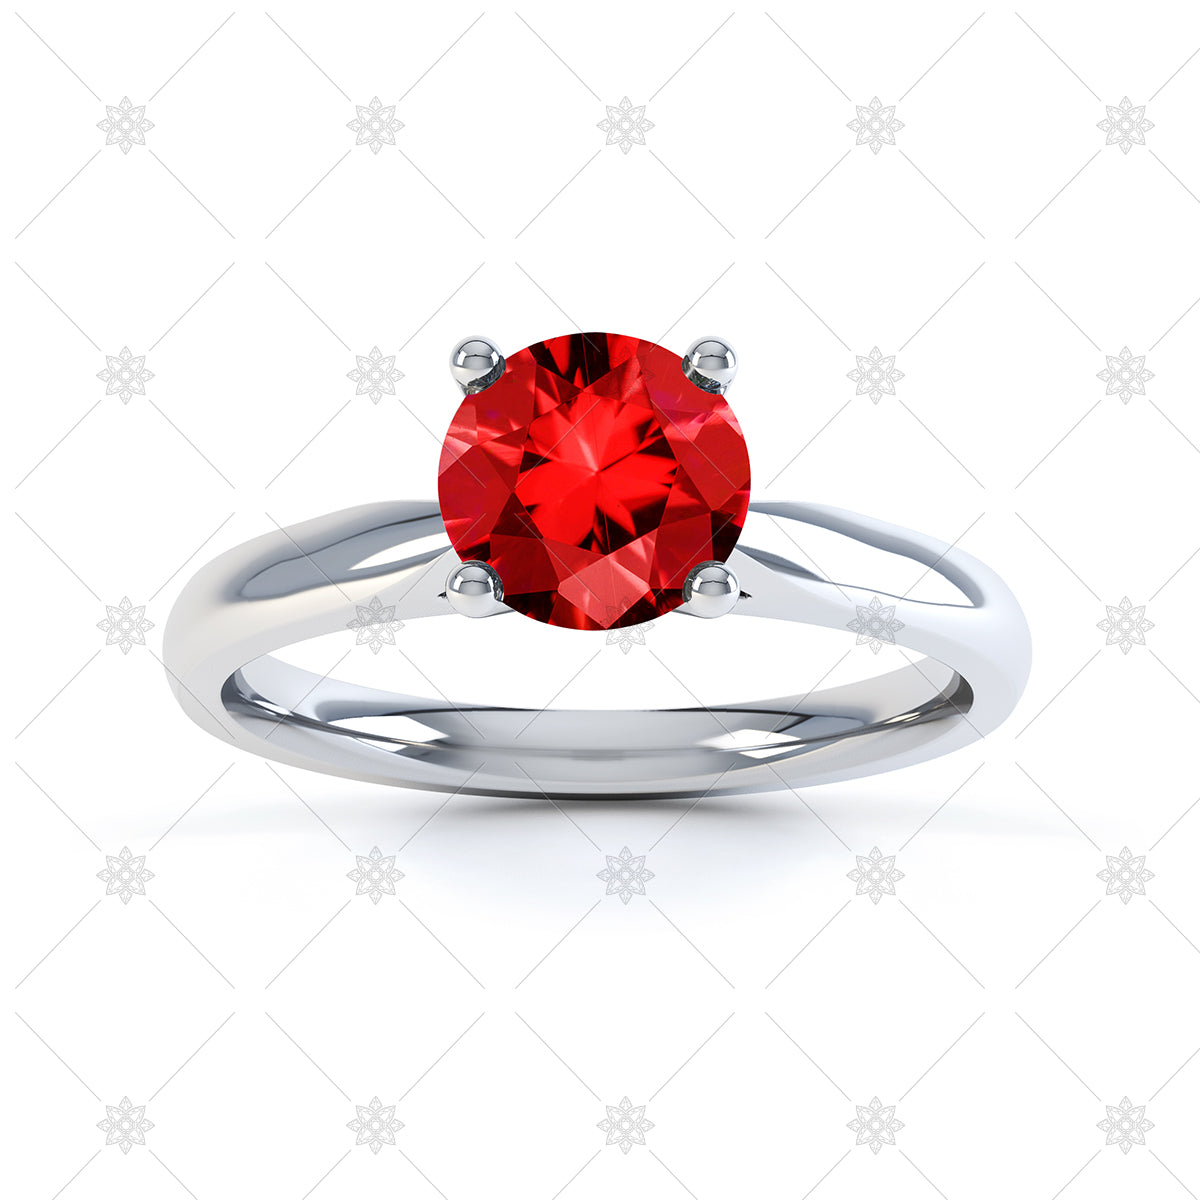 Red Ruby gemstone ring image